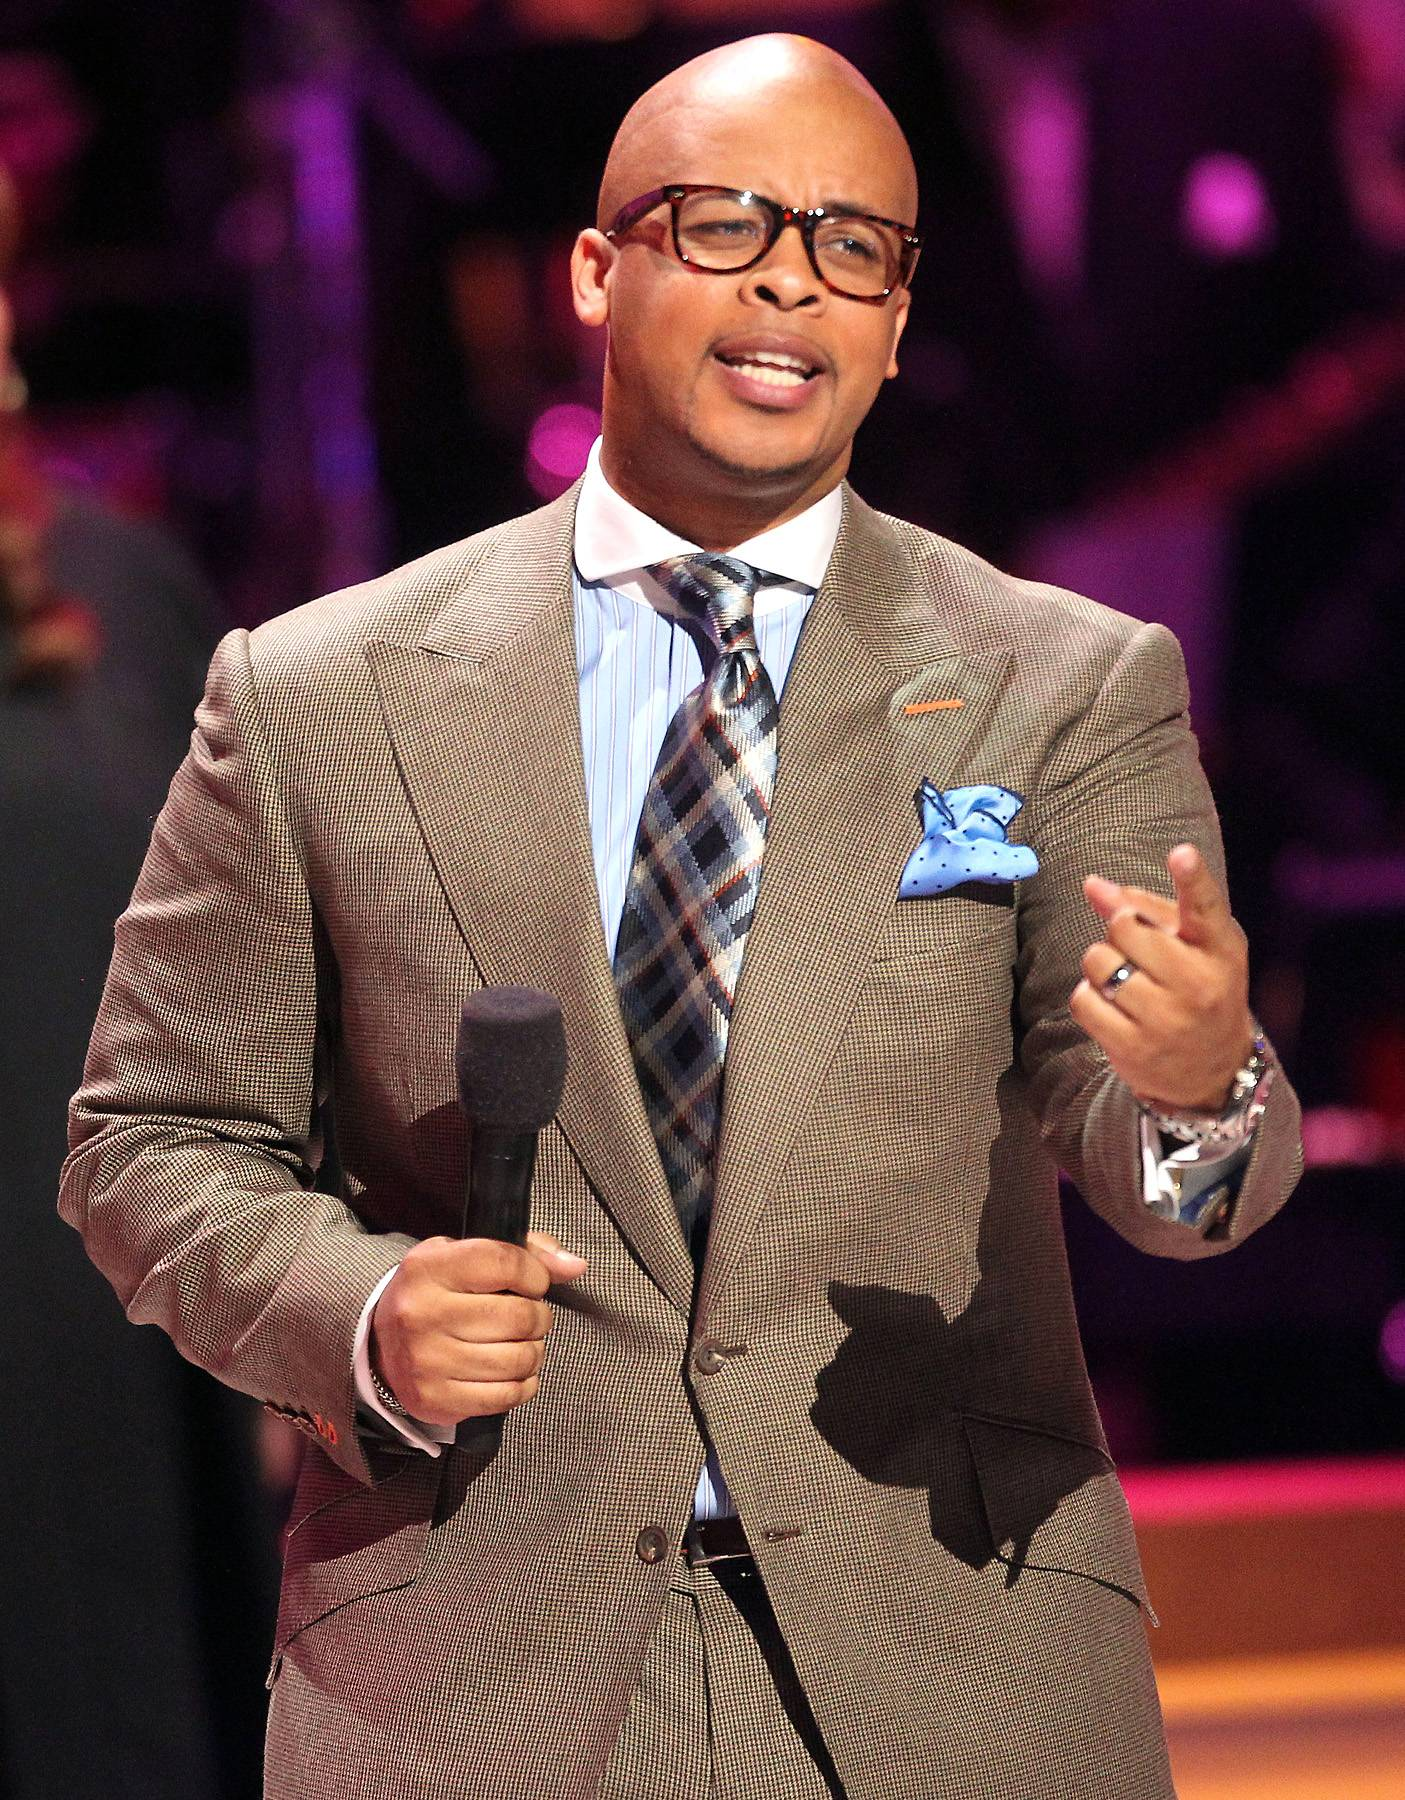 """James Fortune - FIYA front man James Frotune also hit the road this year with """"United As One,"""" one of the biggest gospel tours of the 2013 season.(Photo: Frederick M. Brown/Getty Images)"""